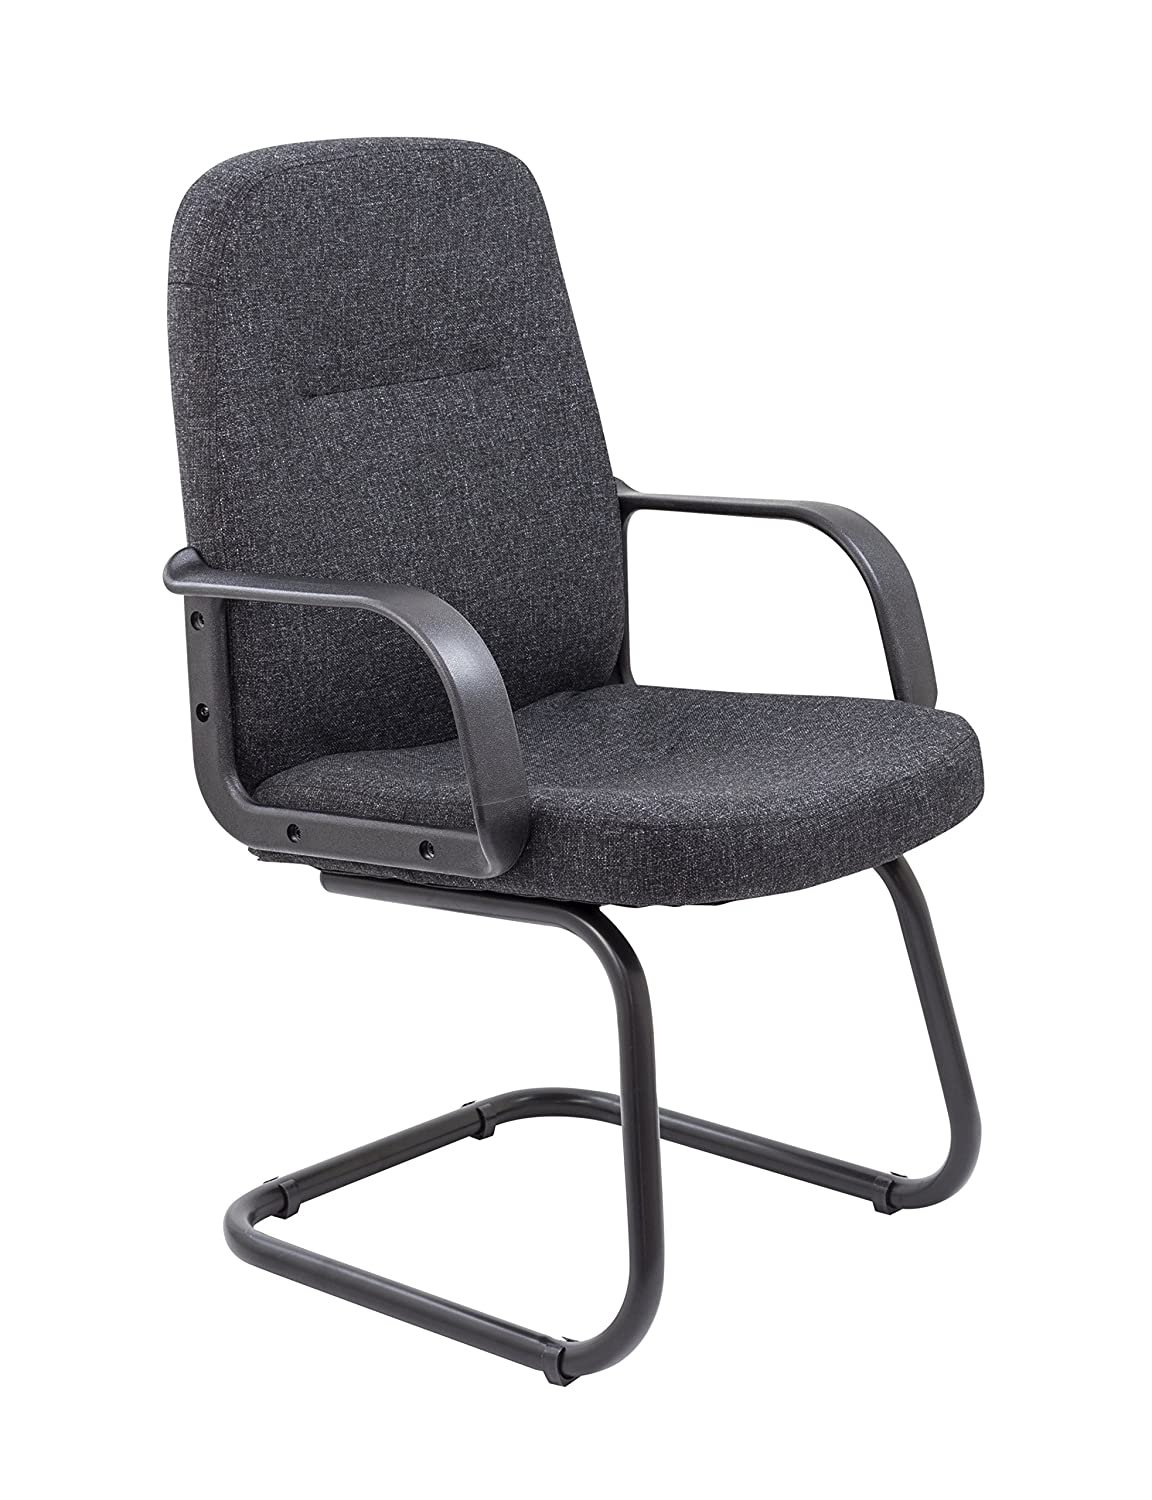 office hippo office visitor chair fabric charcoal amazon co uk rh amazon co uk Modern Office Chairs Visitor Smail Office Visitor Chair